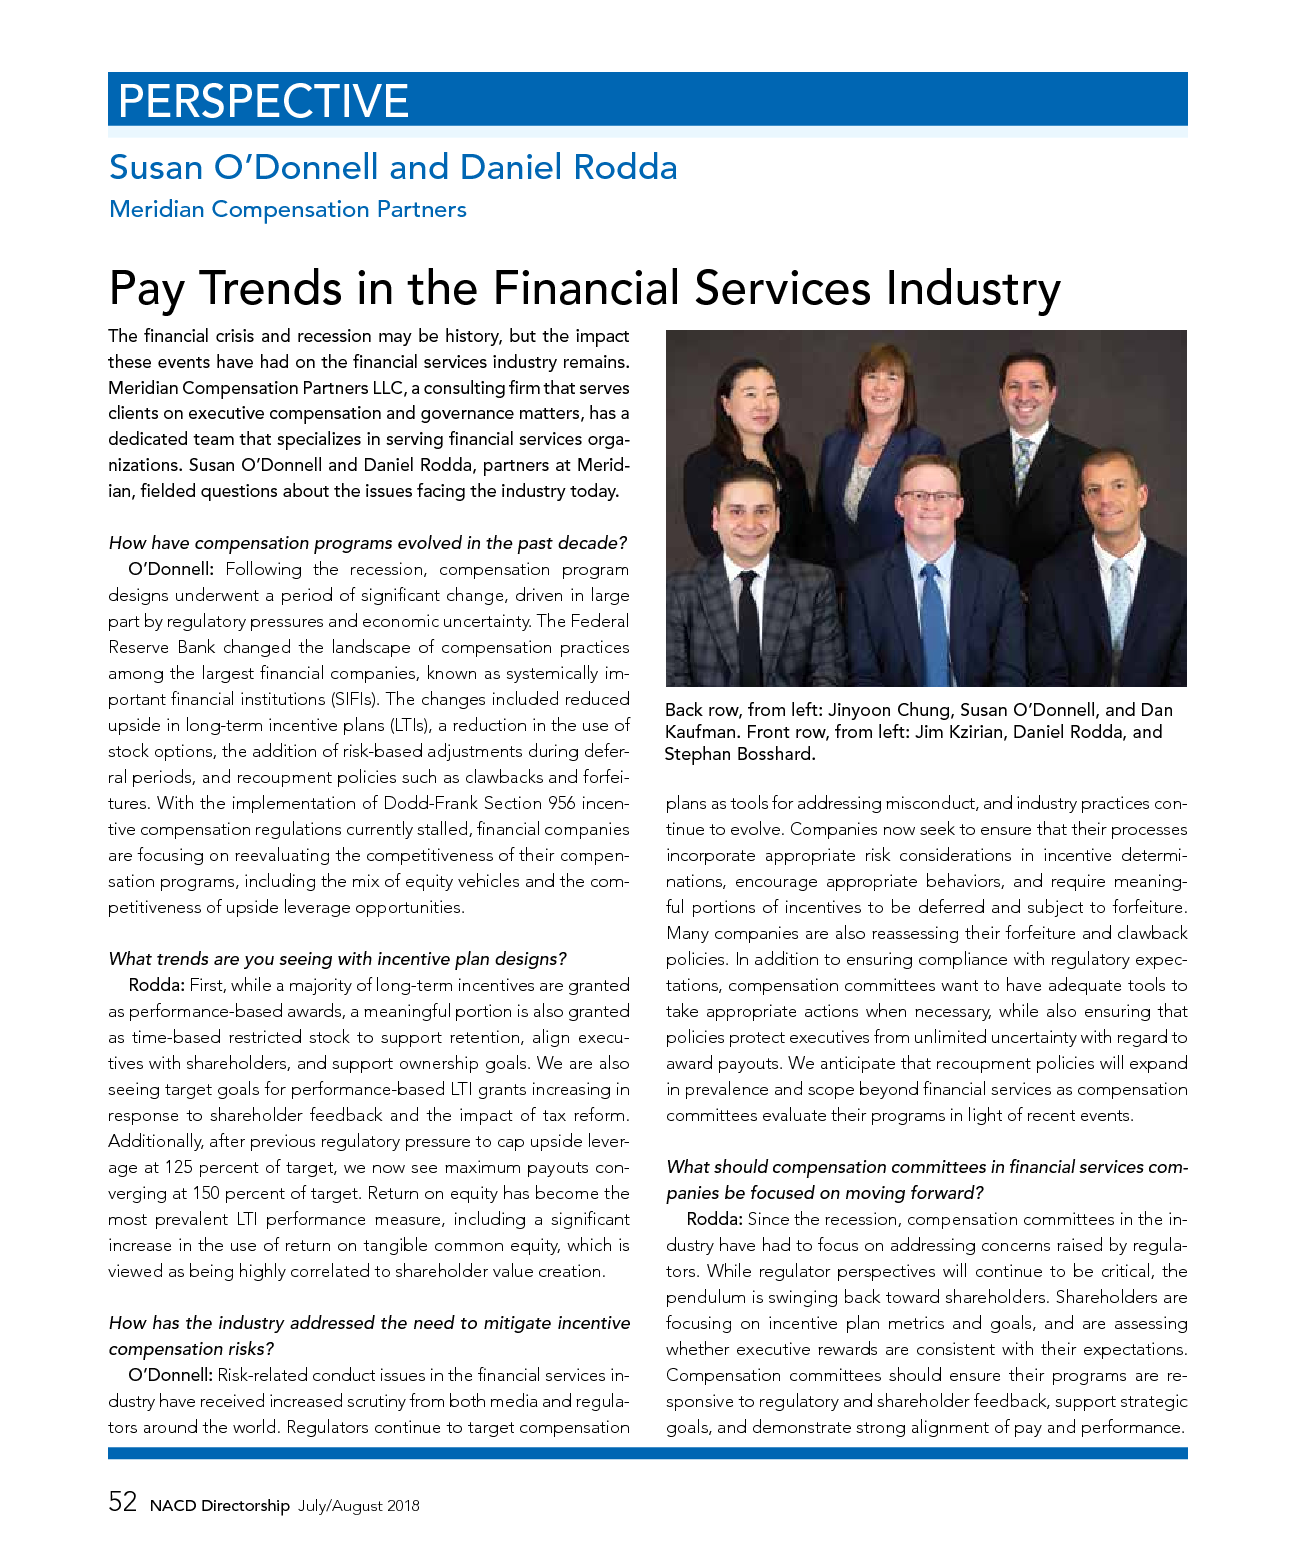 Pay Trends in the Financial Services Industry (PDF)